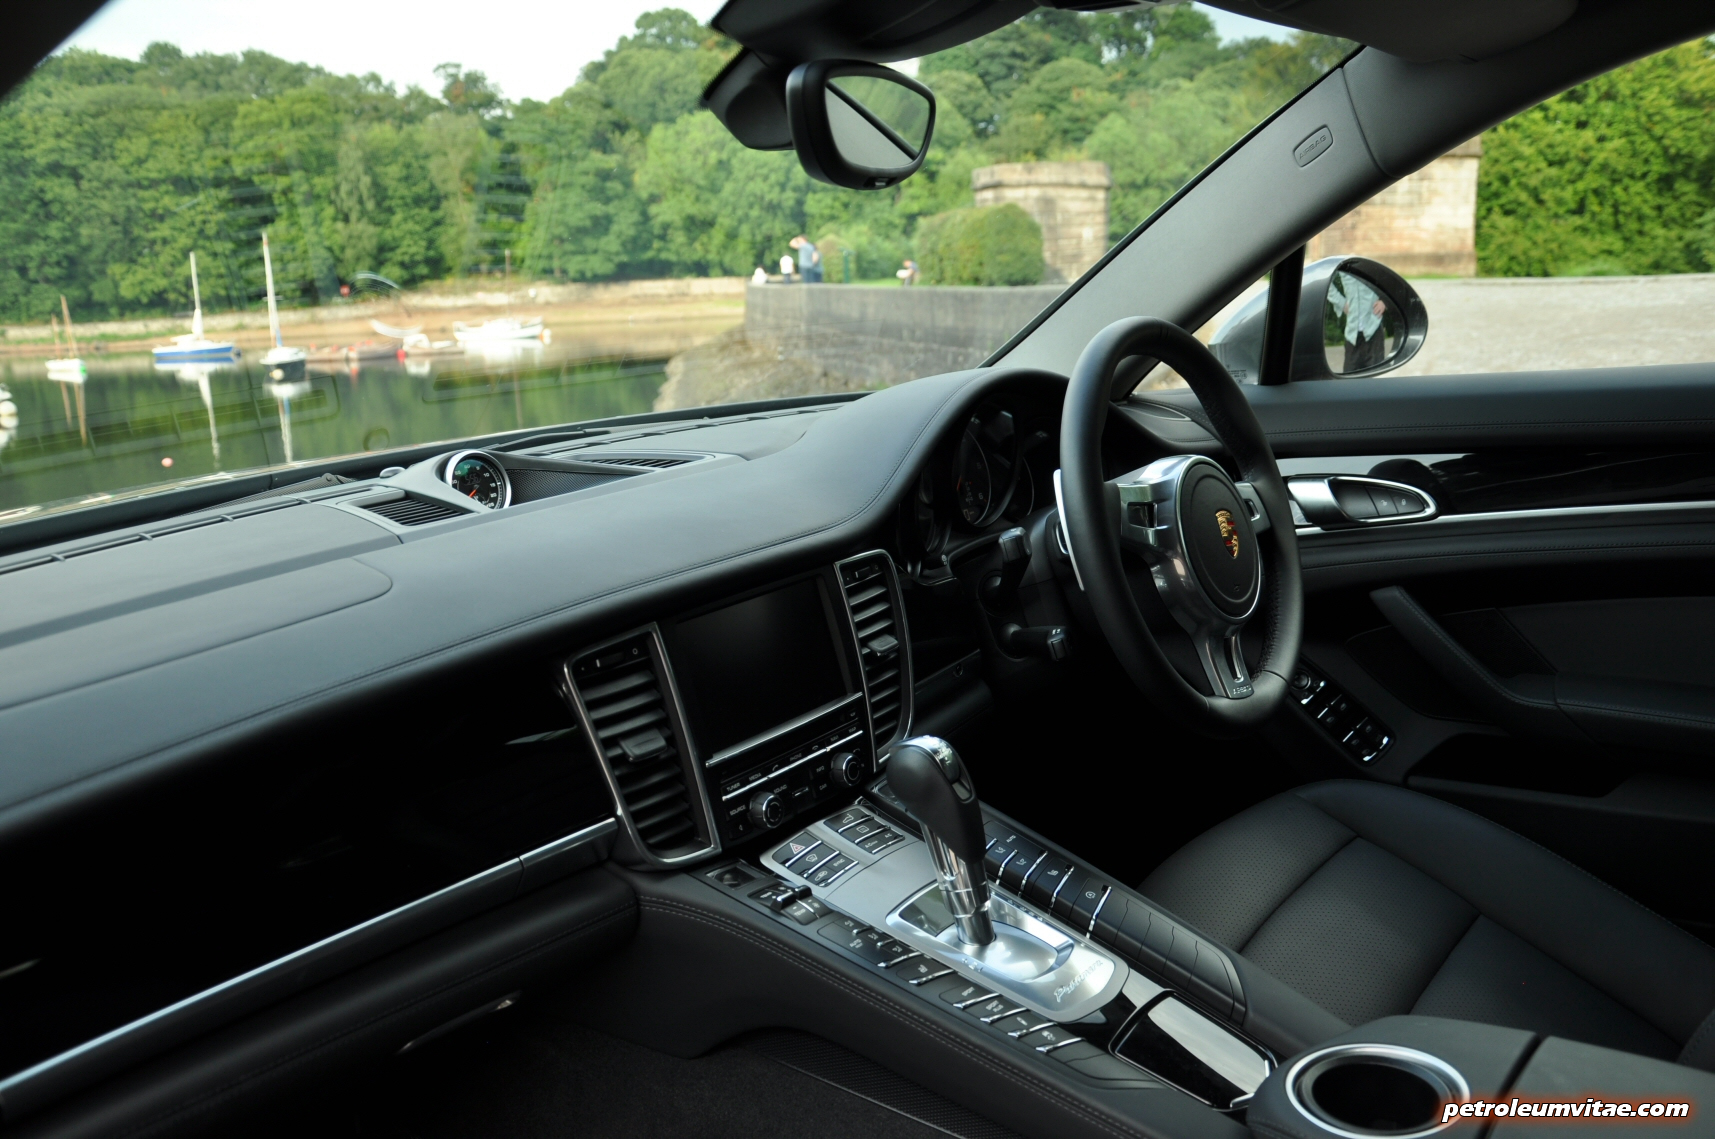 2015 porsche panamera diesel road test review comparison journalist blogger oliver hammond magazine wallpaper photo